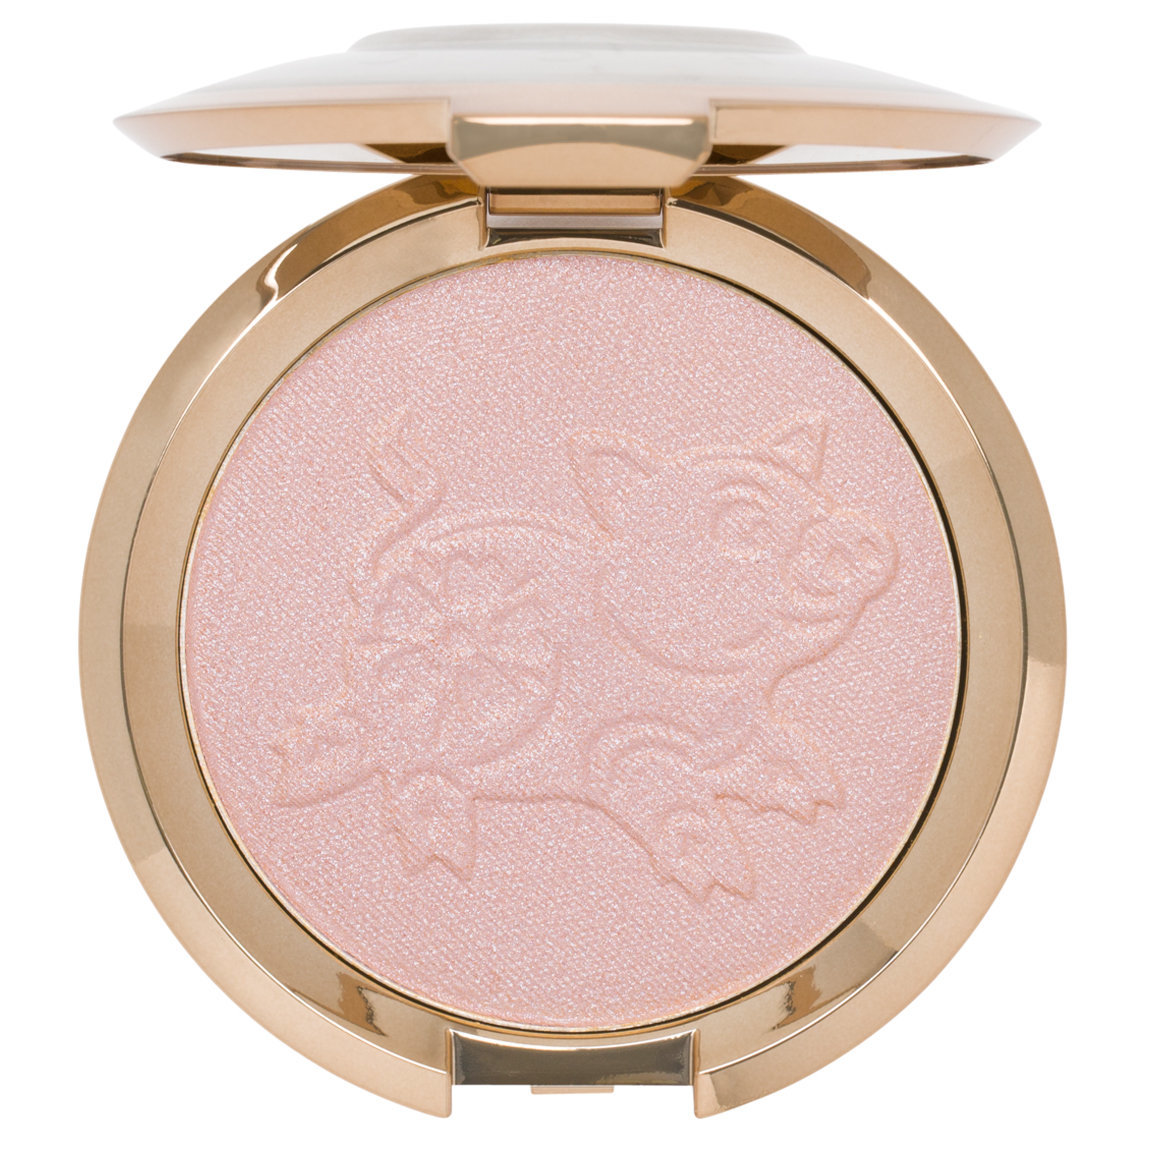 BECCA Shimmering Skin Perfector Pressed Lunar New Year product smear.